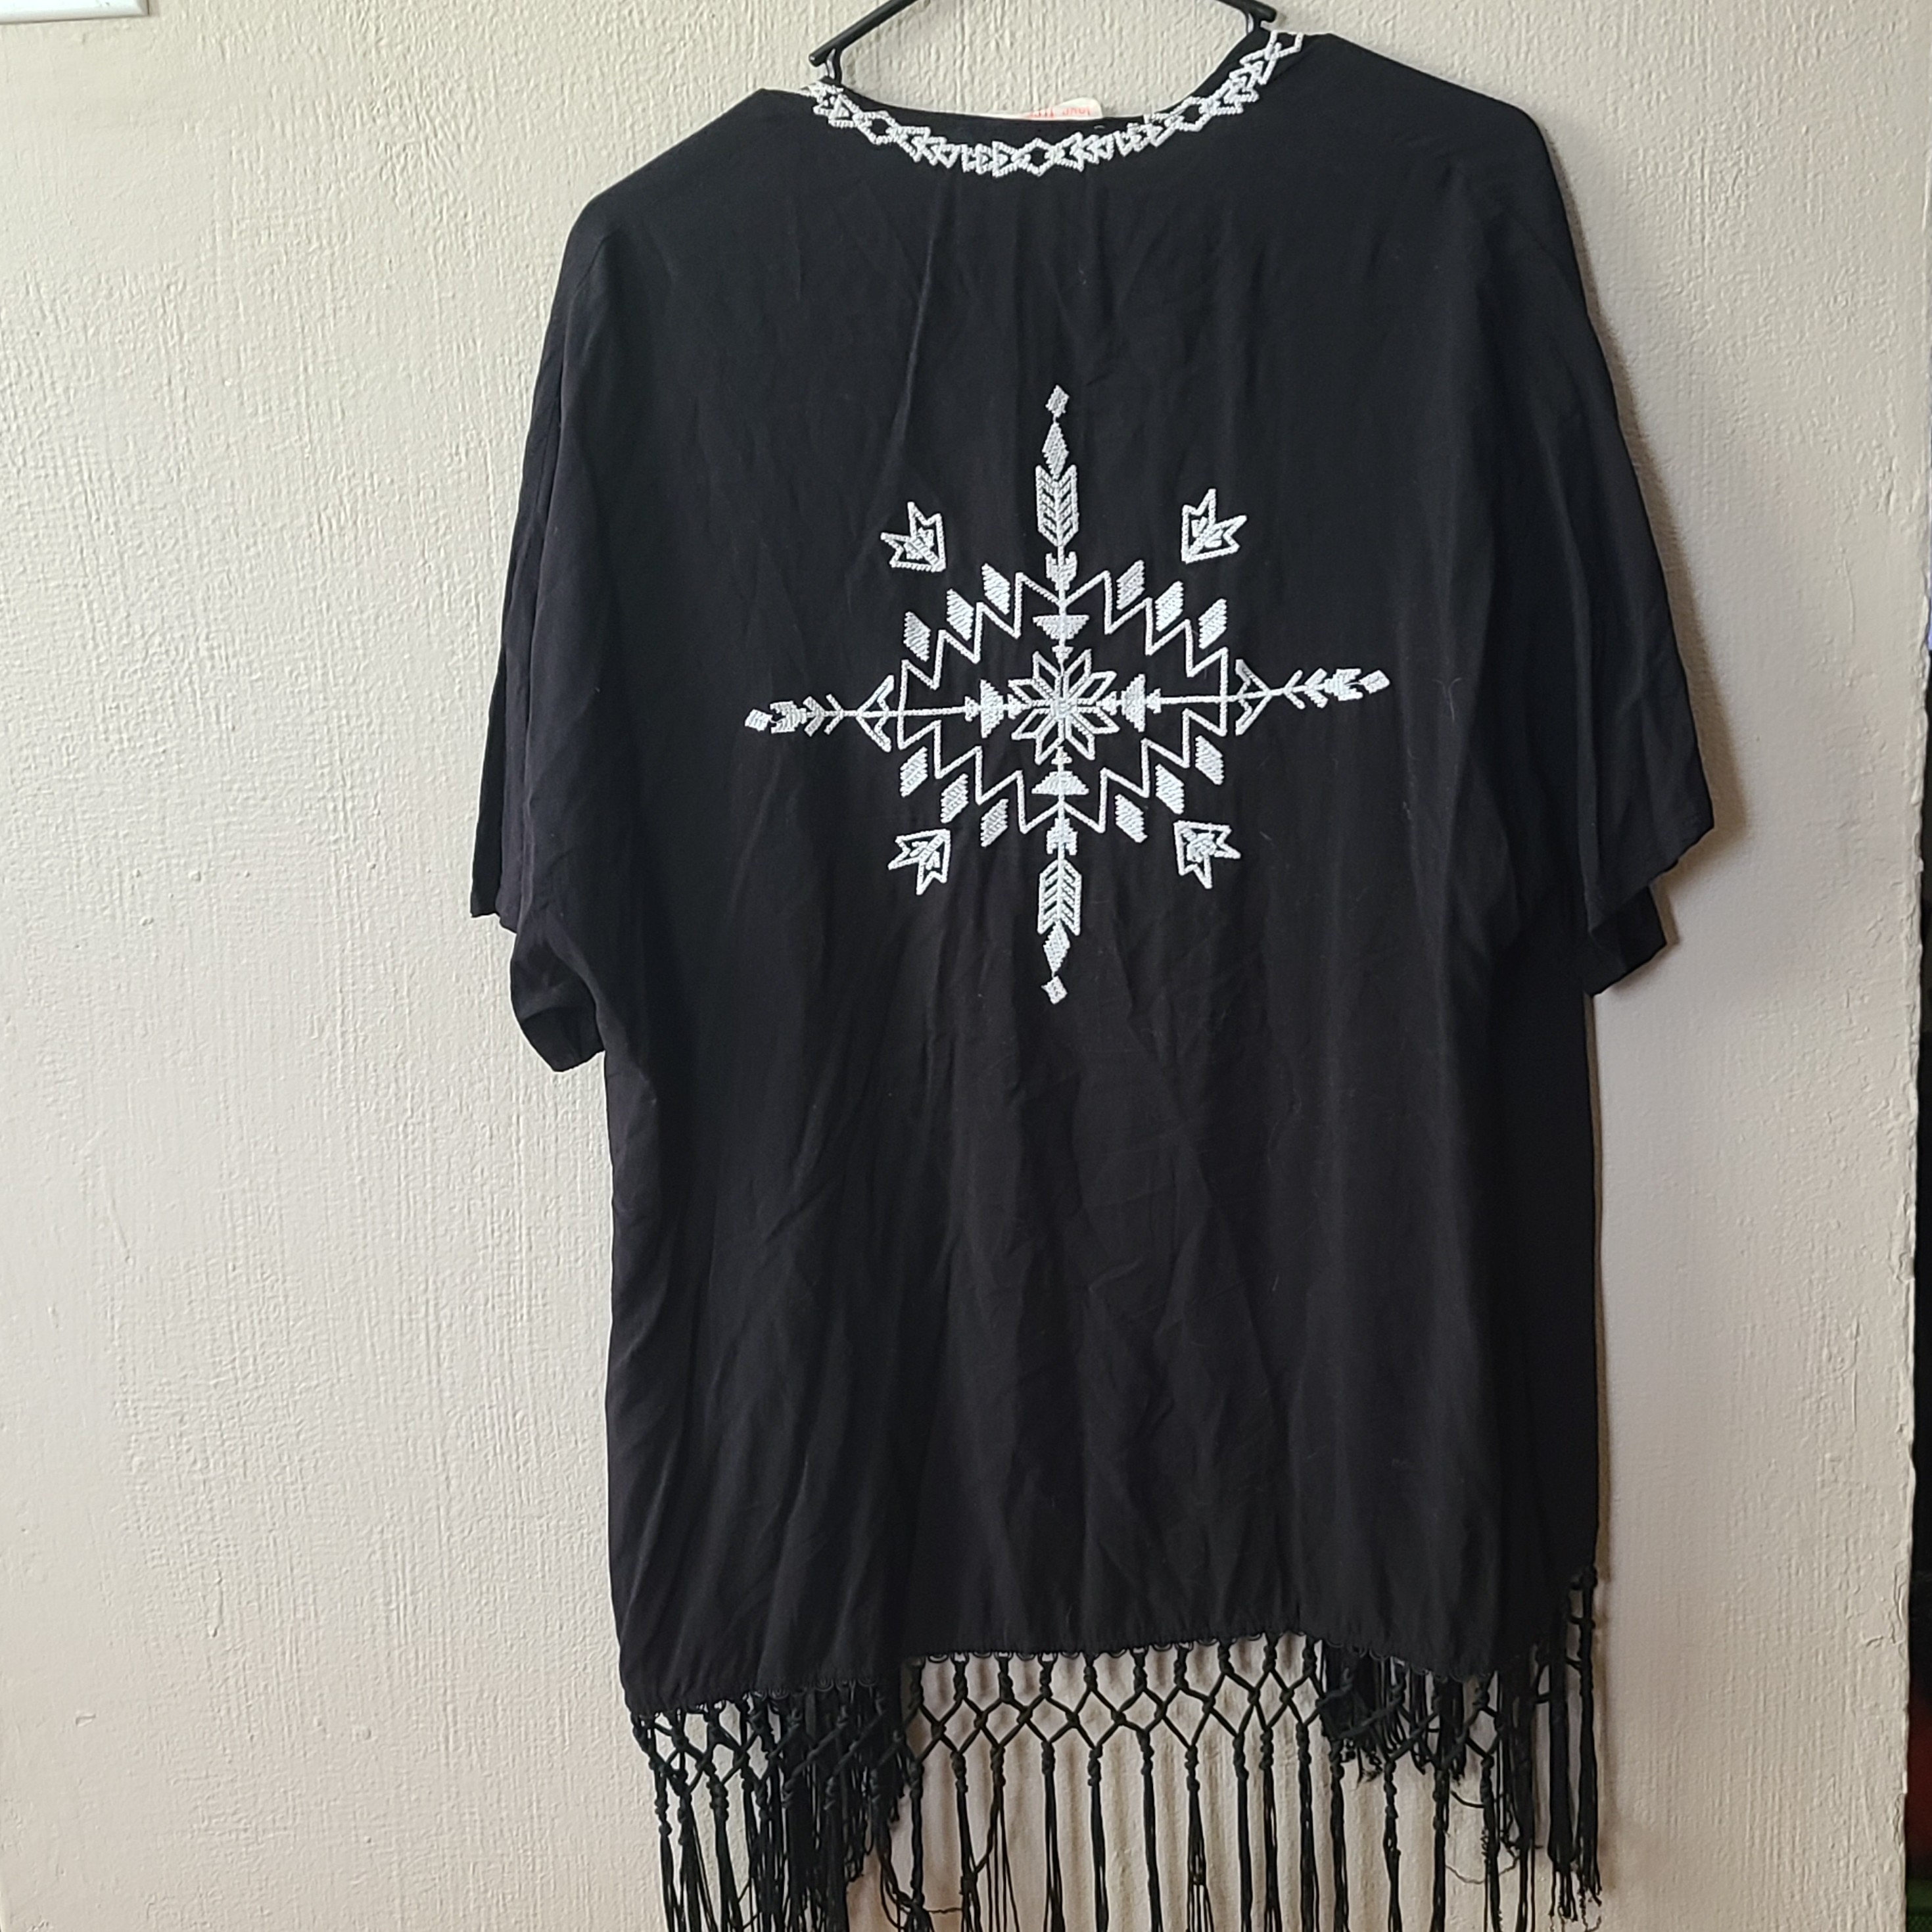 Product Image 1 - Black and white patterned short